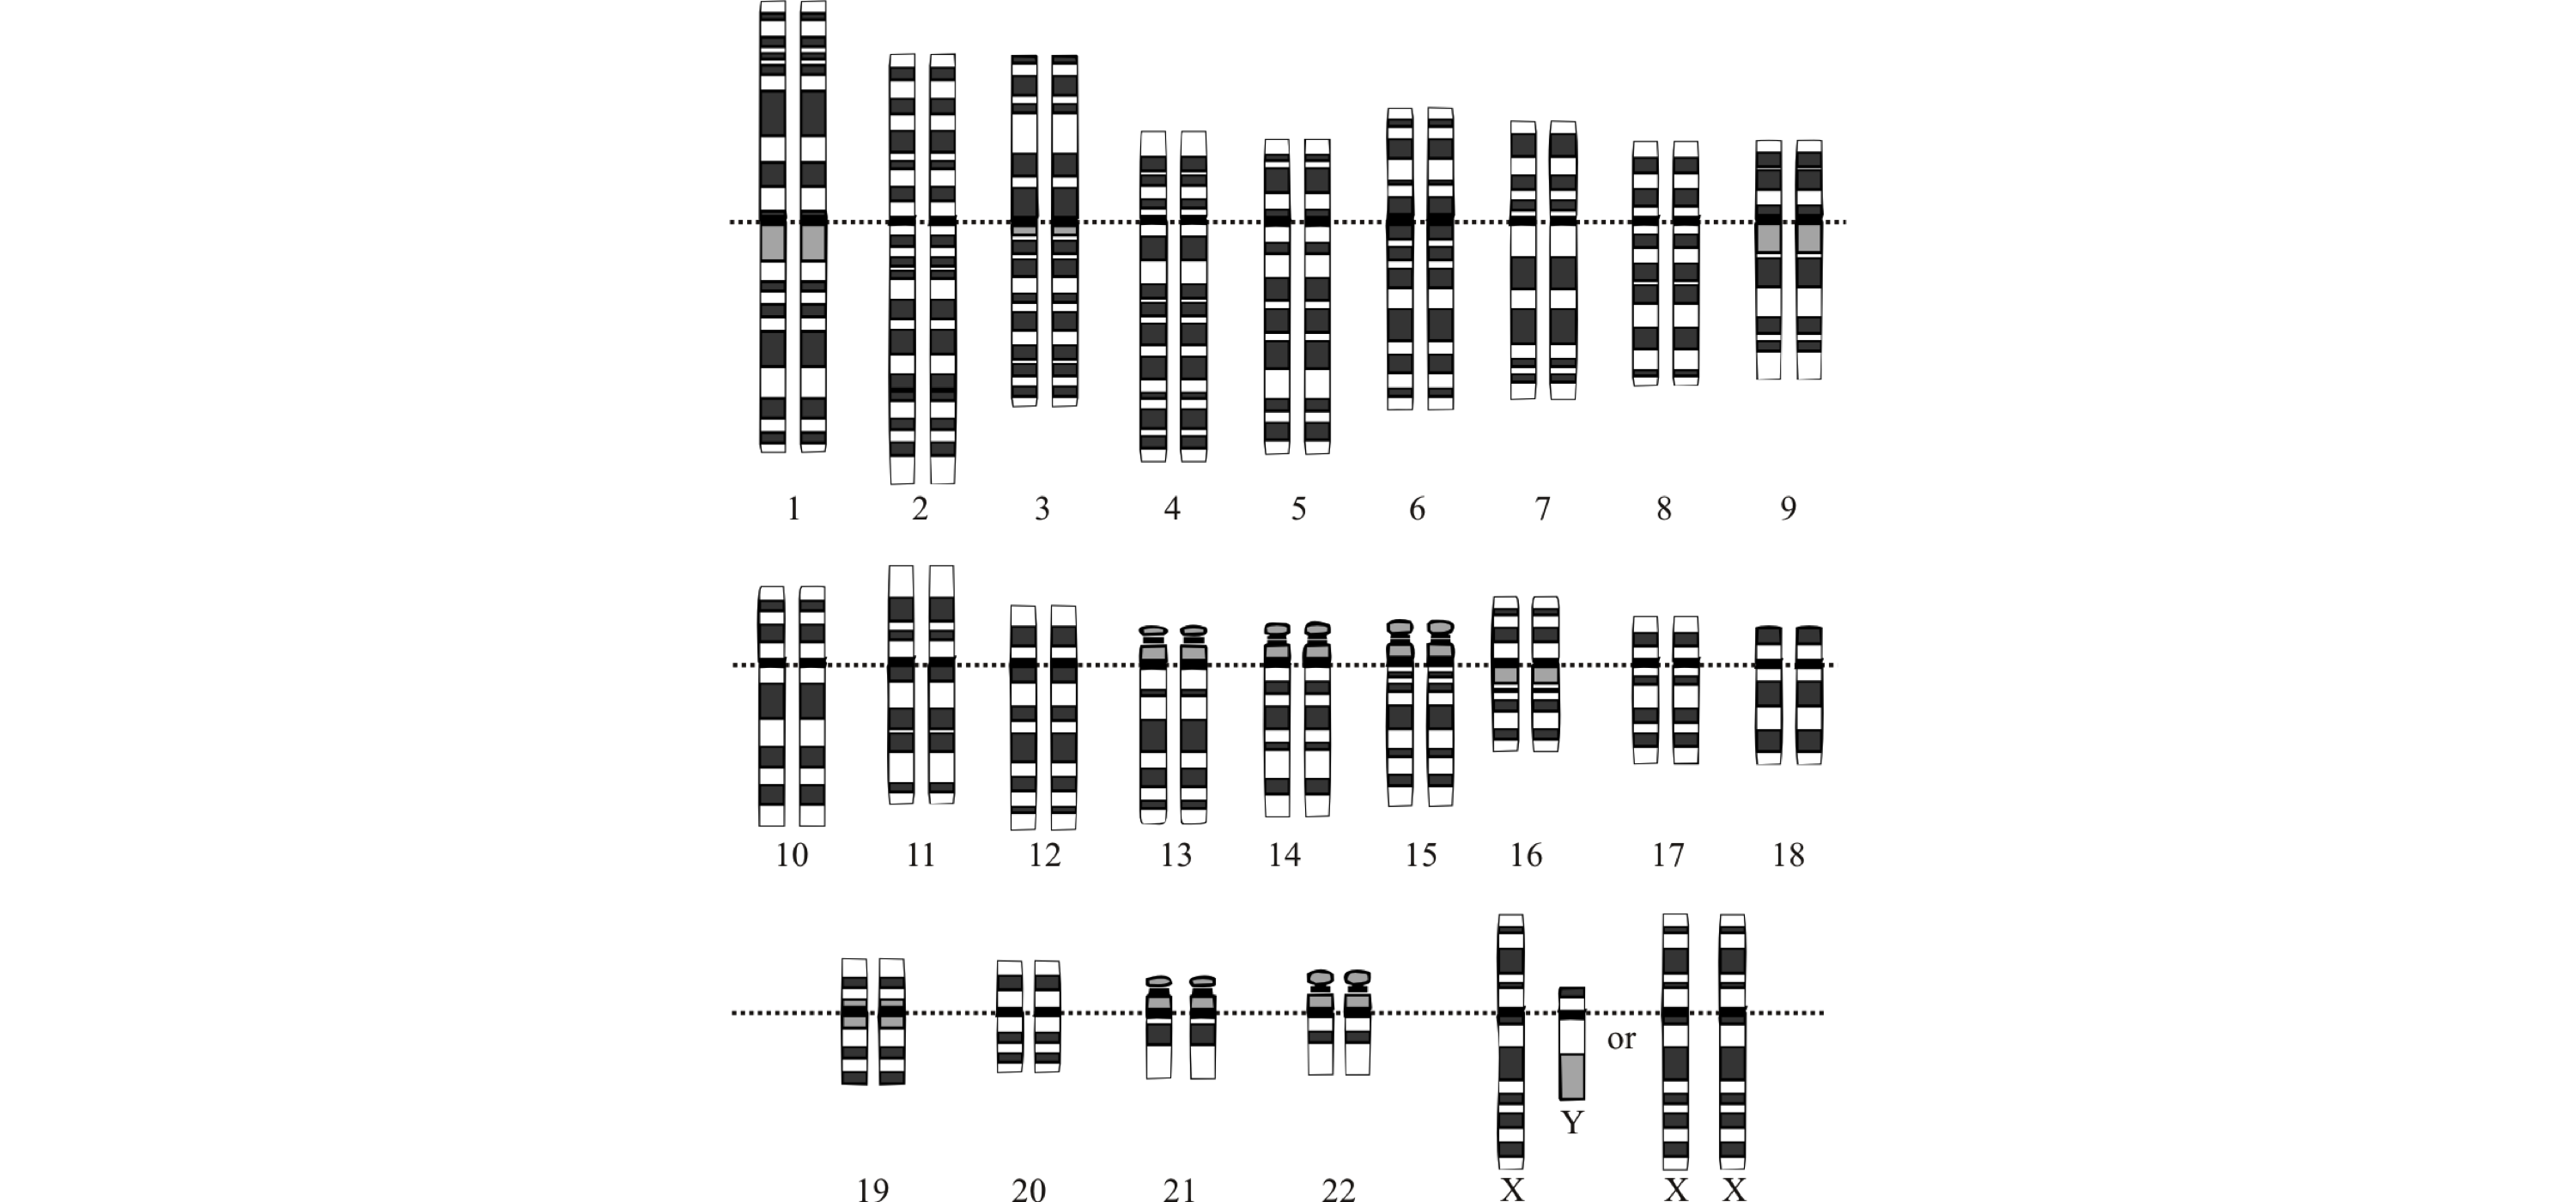 The idealized human diploid karyotype showing the organization of the genome into chromosomes||extensions-genomics-diagram